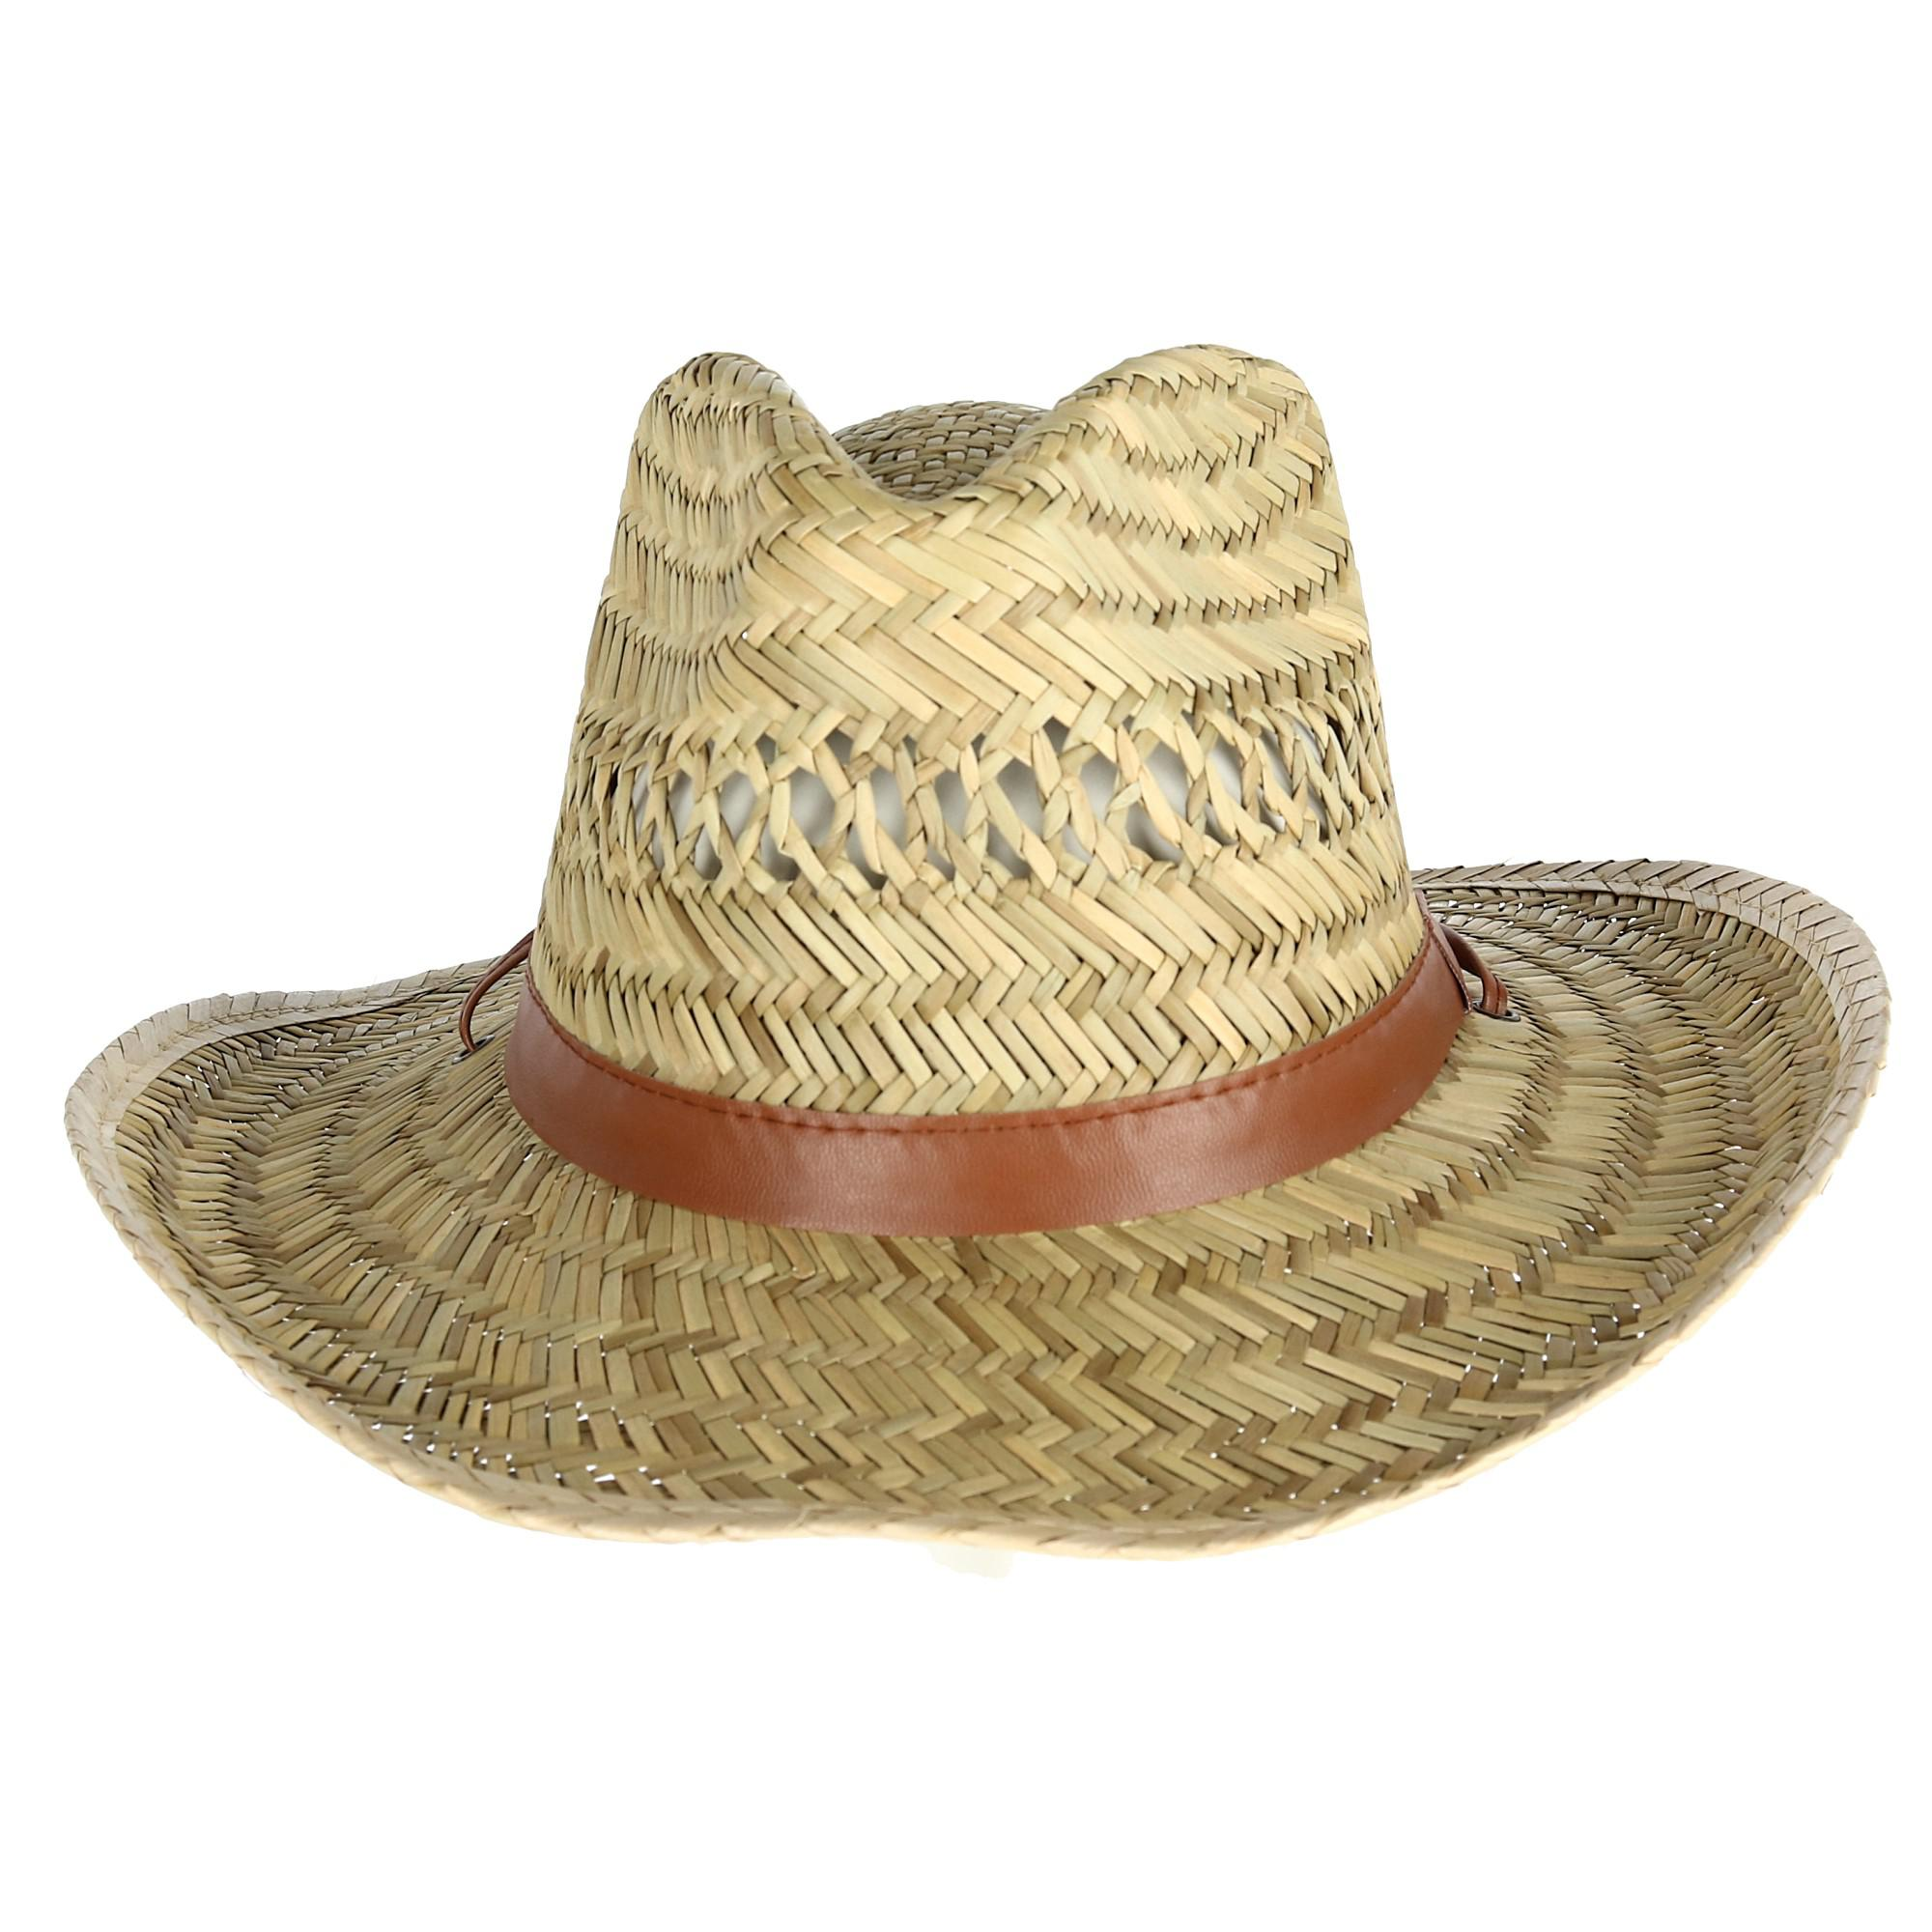 3754d083be6 Details about New Kenny K Men s Rush Straw Lightweight Safari Hat with Chin  Cord